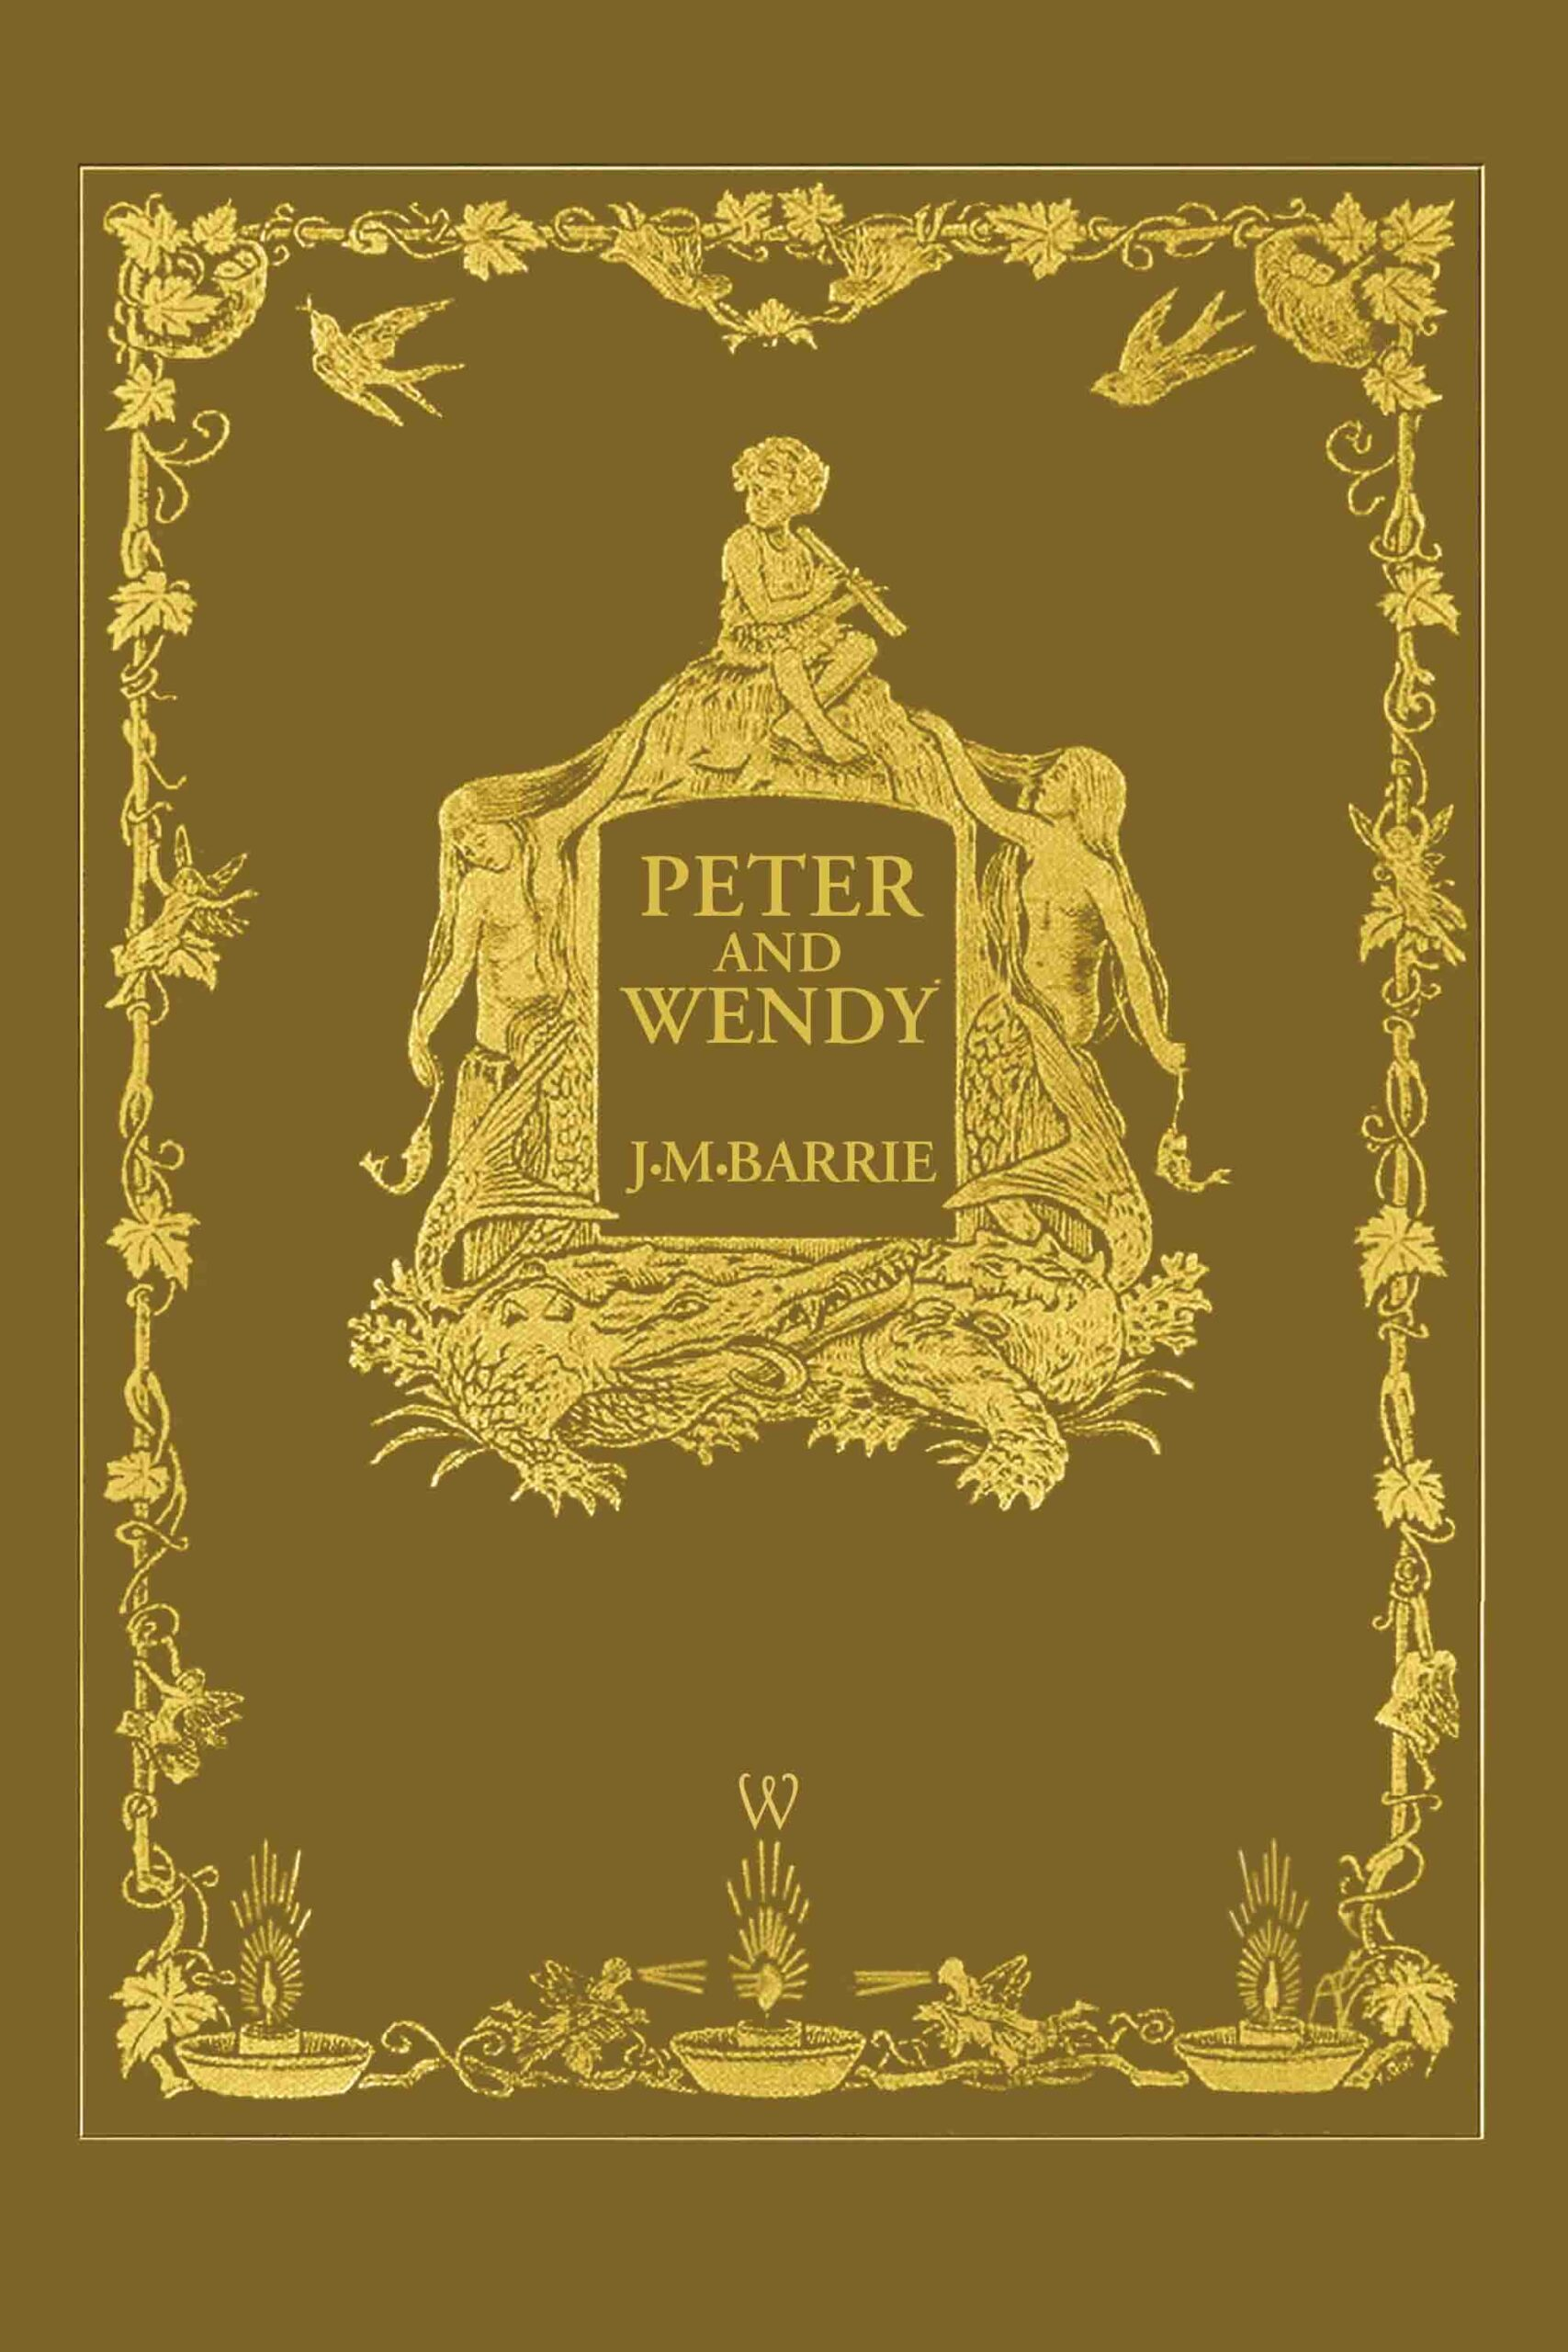 Peter and Wendy or Peter Pan (Wisehouse Classics Anniversary Edition of 1911 – with 13 riginal illustrations)